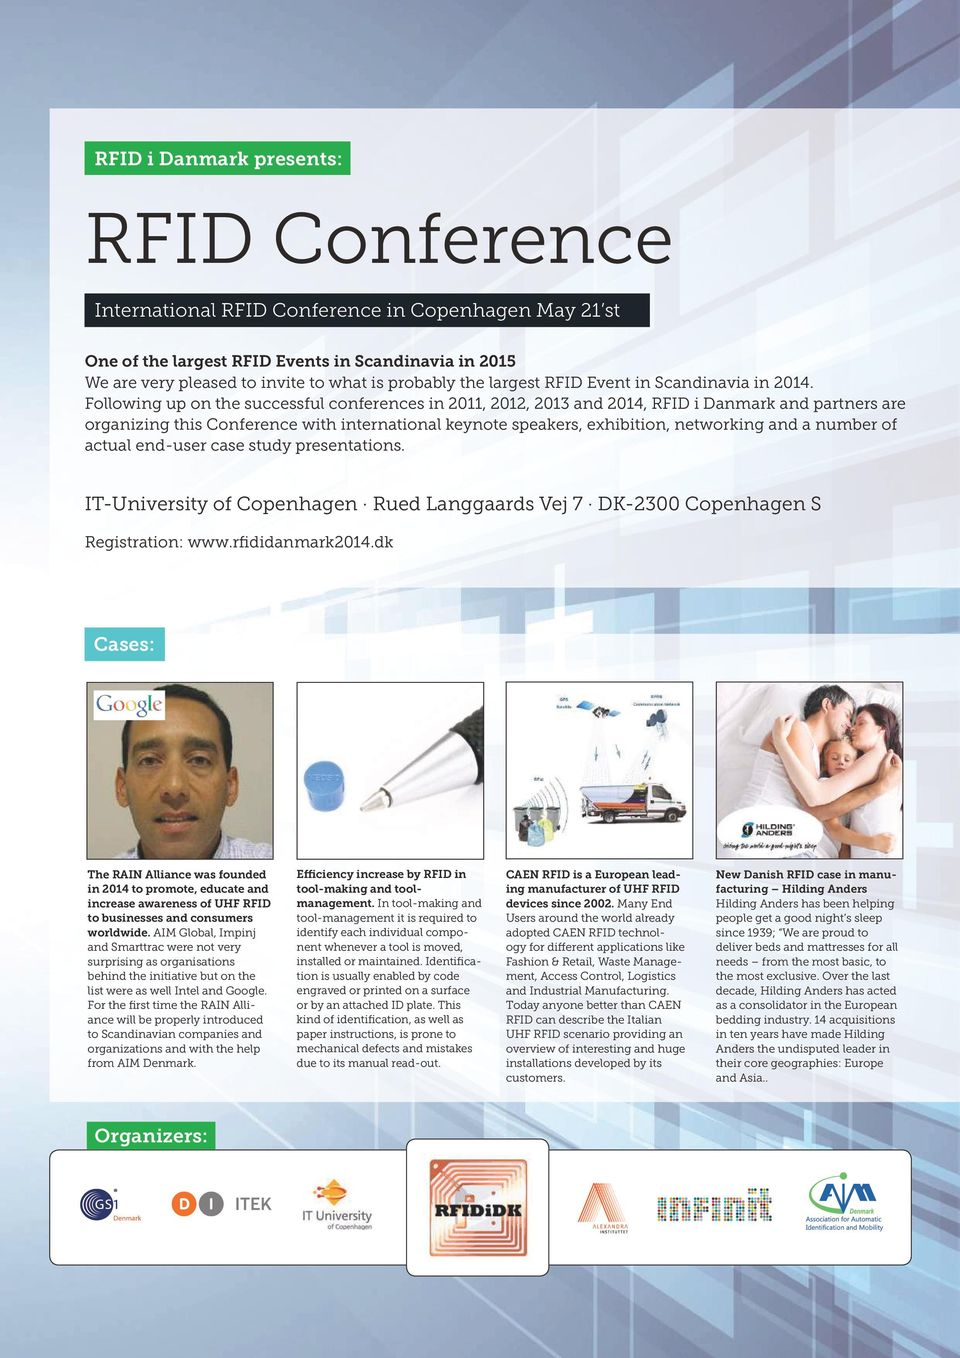 Following up on the successful conferences in 2011, 2012, 2013 and 2014, RFID i Danmark and partners are organizing this Conference with international keynote speakers, exhibition, networking and a